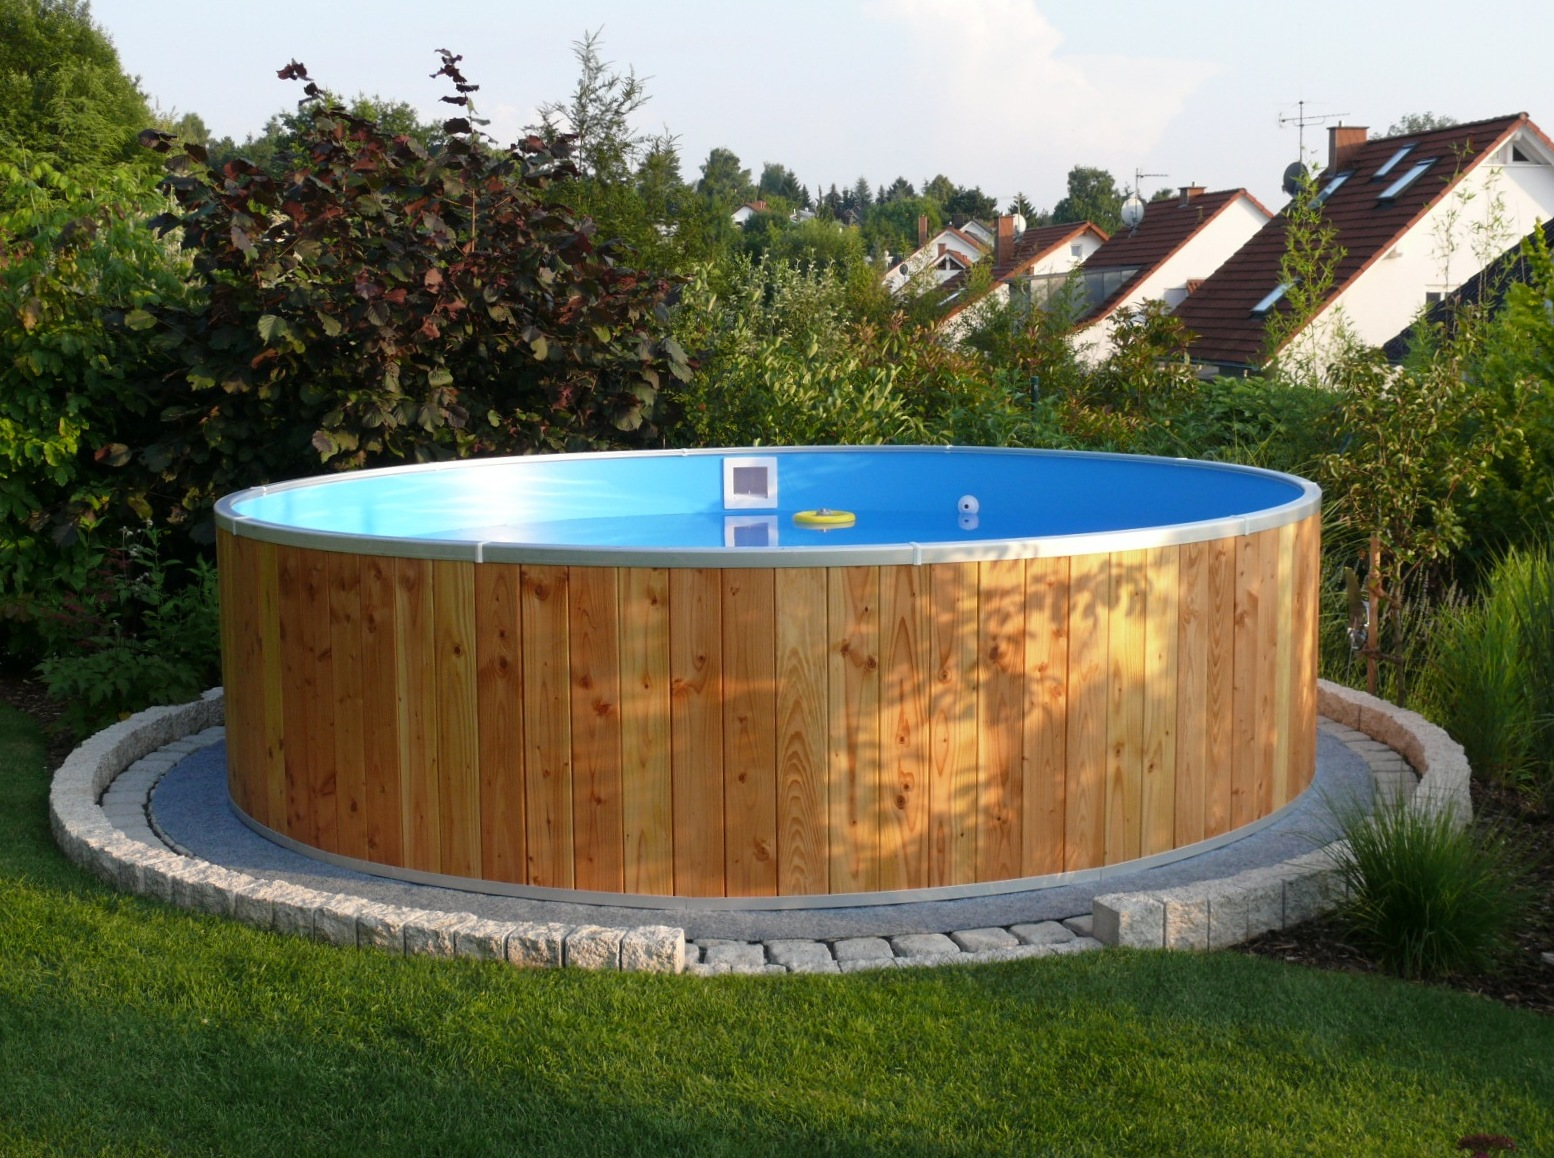 Pool Mit Paletten Verkleiden Rundbecken Fun Wood Set 3 Ebay